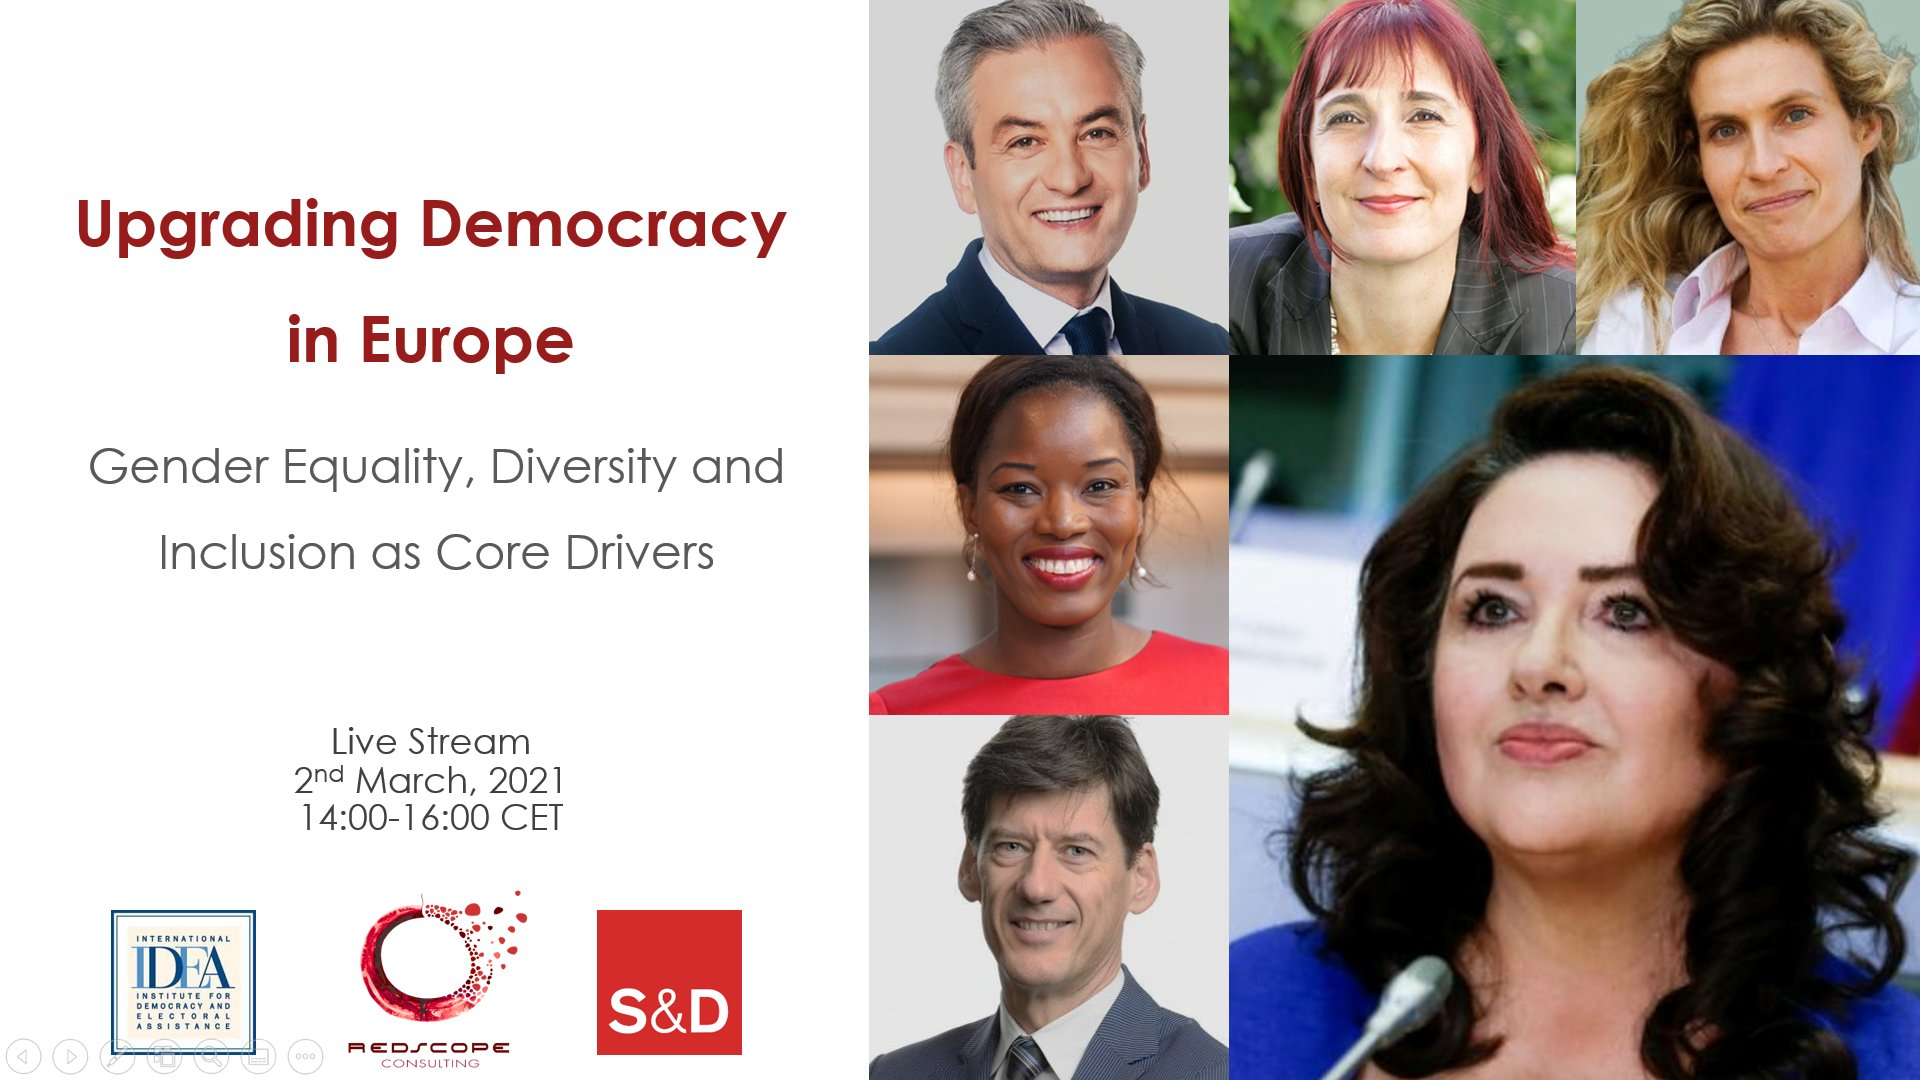 Senior Experts Dialogue on Upgrading Democracy in Europe: Gender Equality, Diversity and Inclusion as core drivers, 2 March 2021